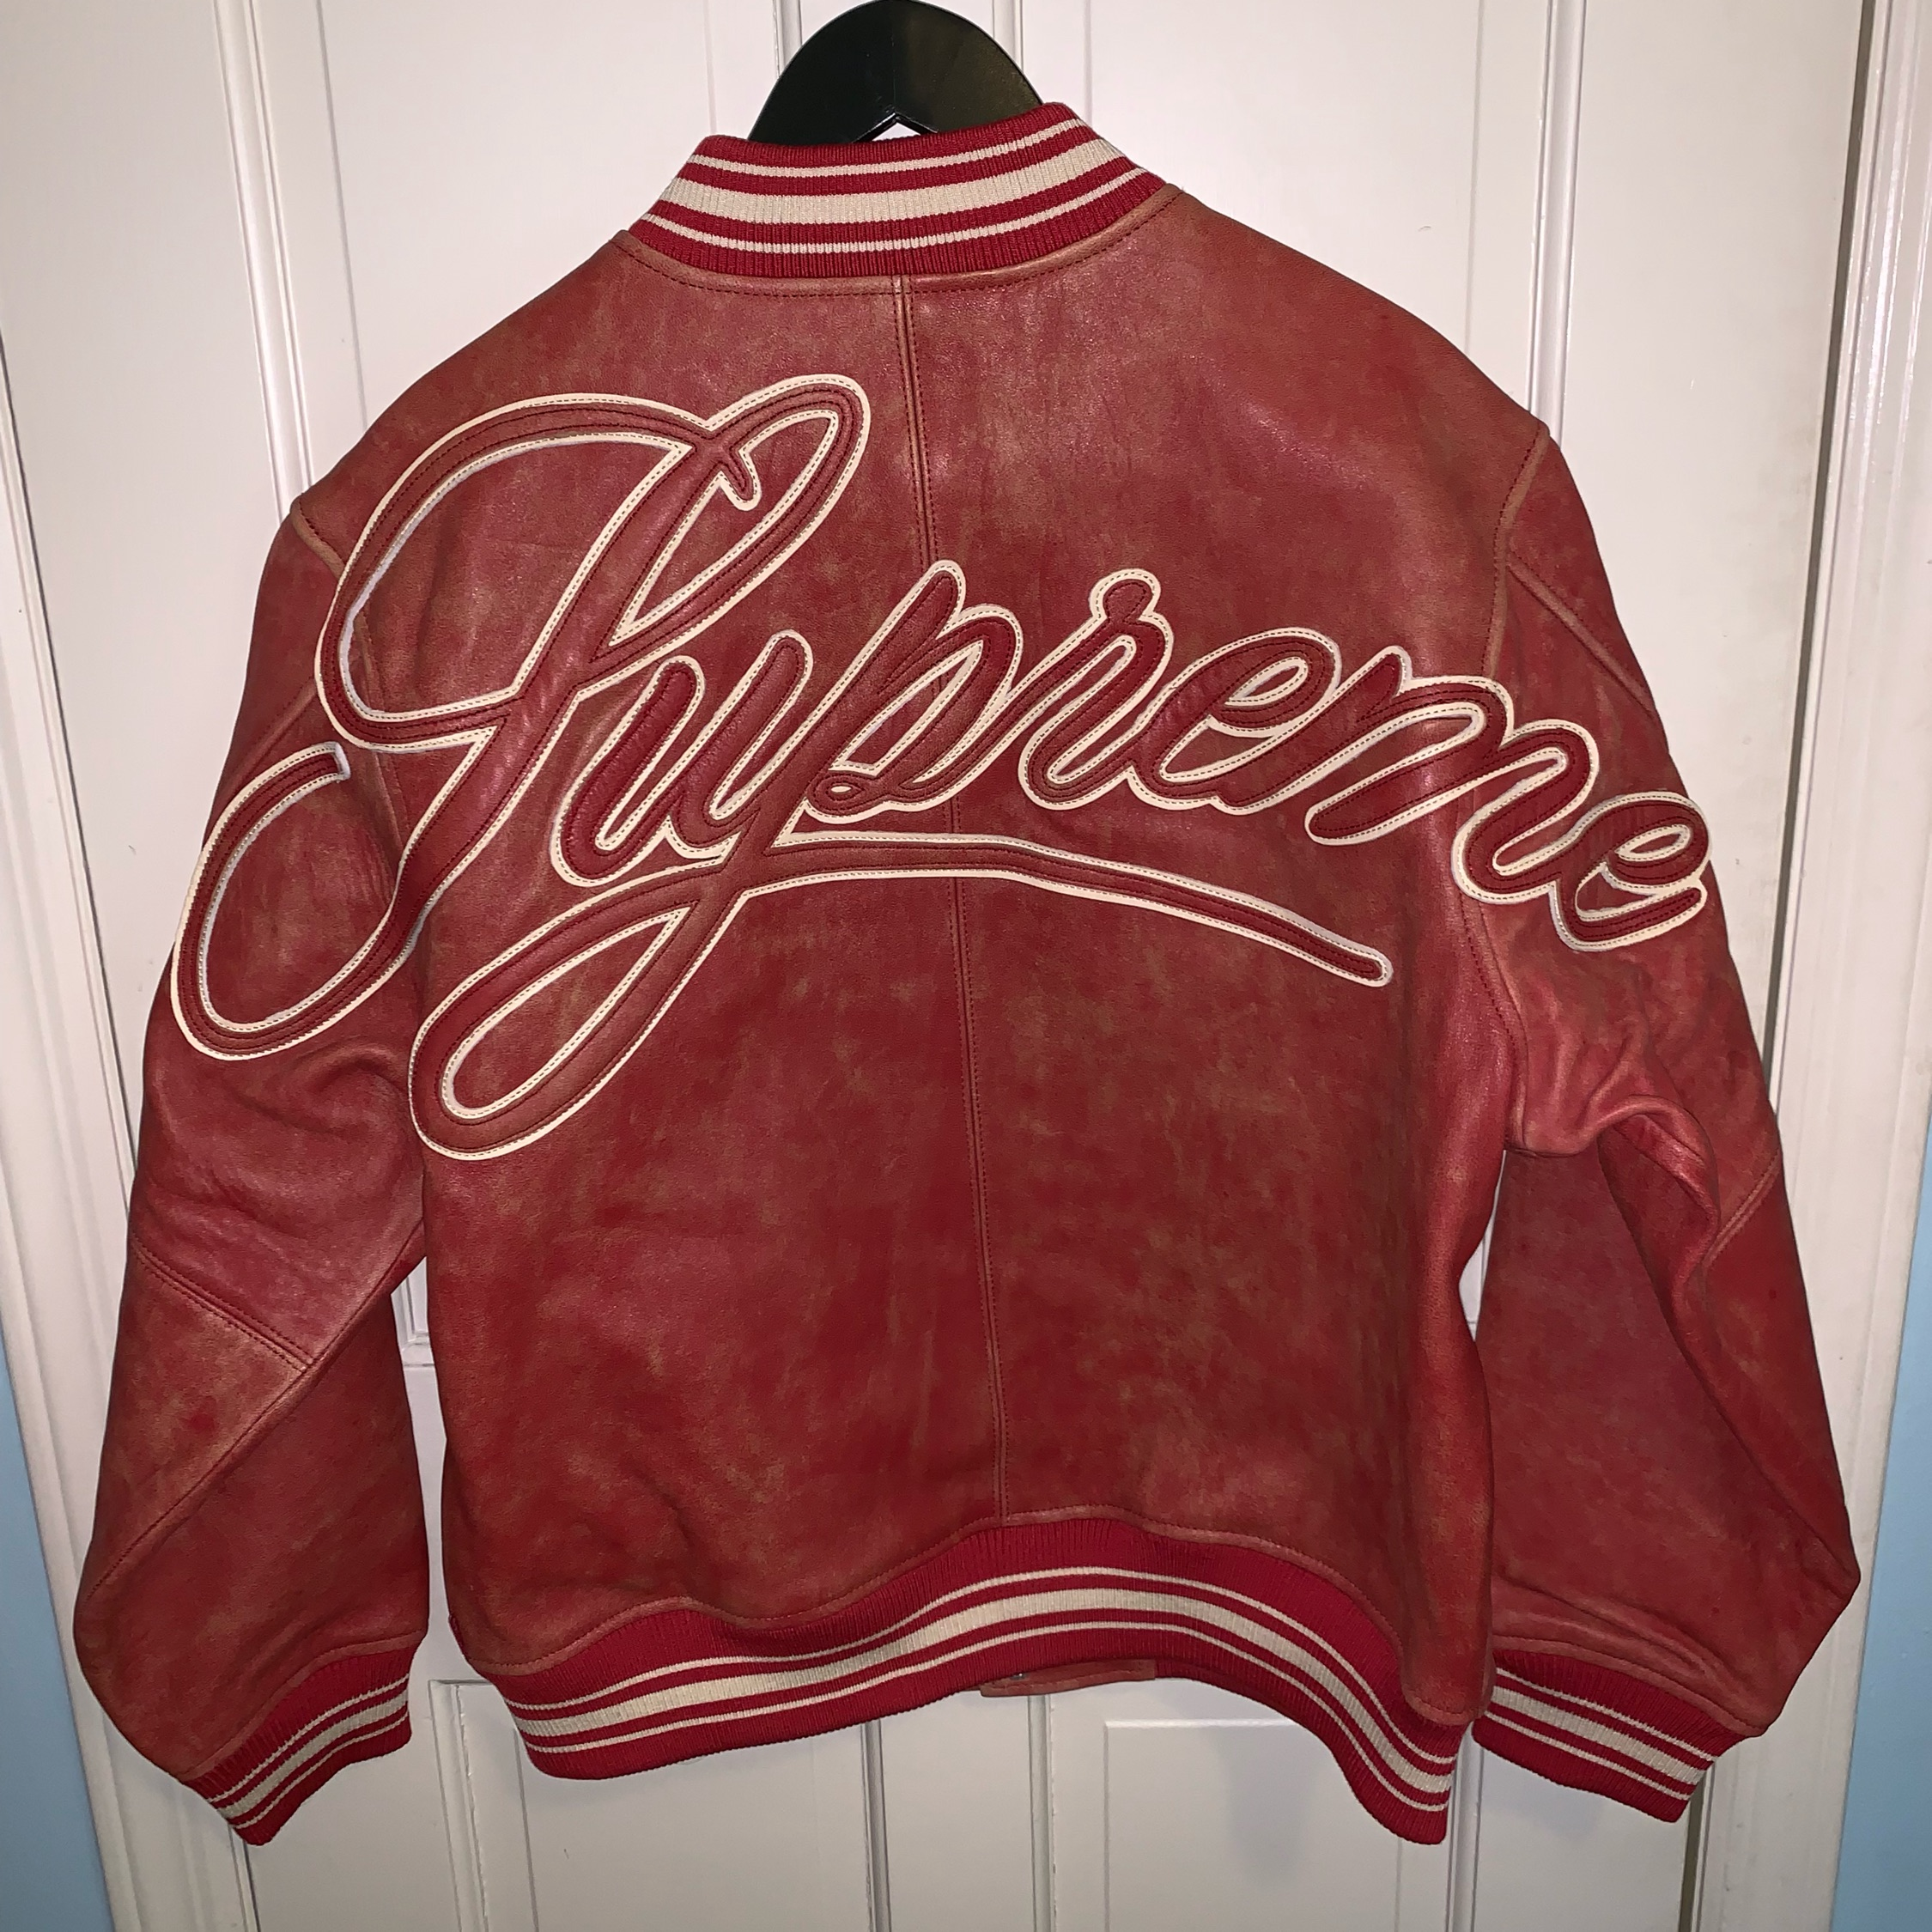 official high quality materials 50-70%off Supreme Painted Worn Leather Varsity Jacket Red